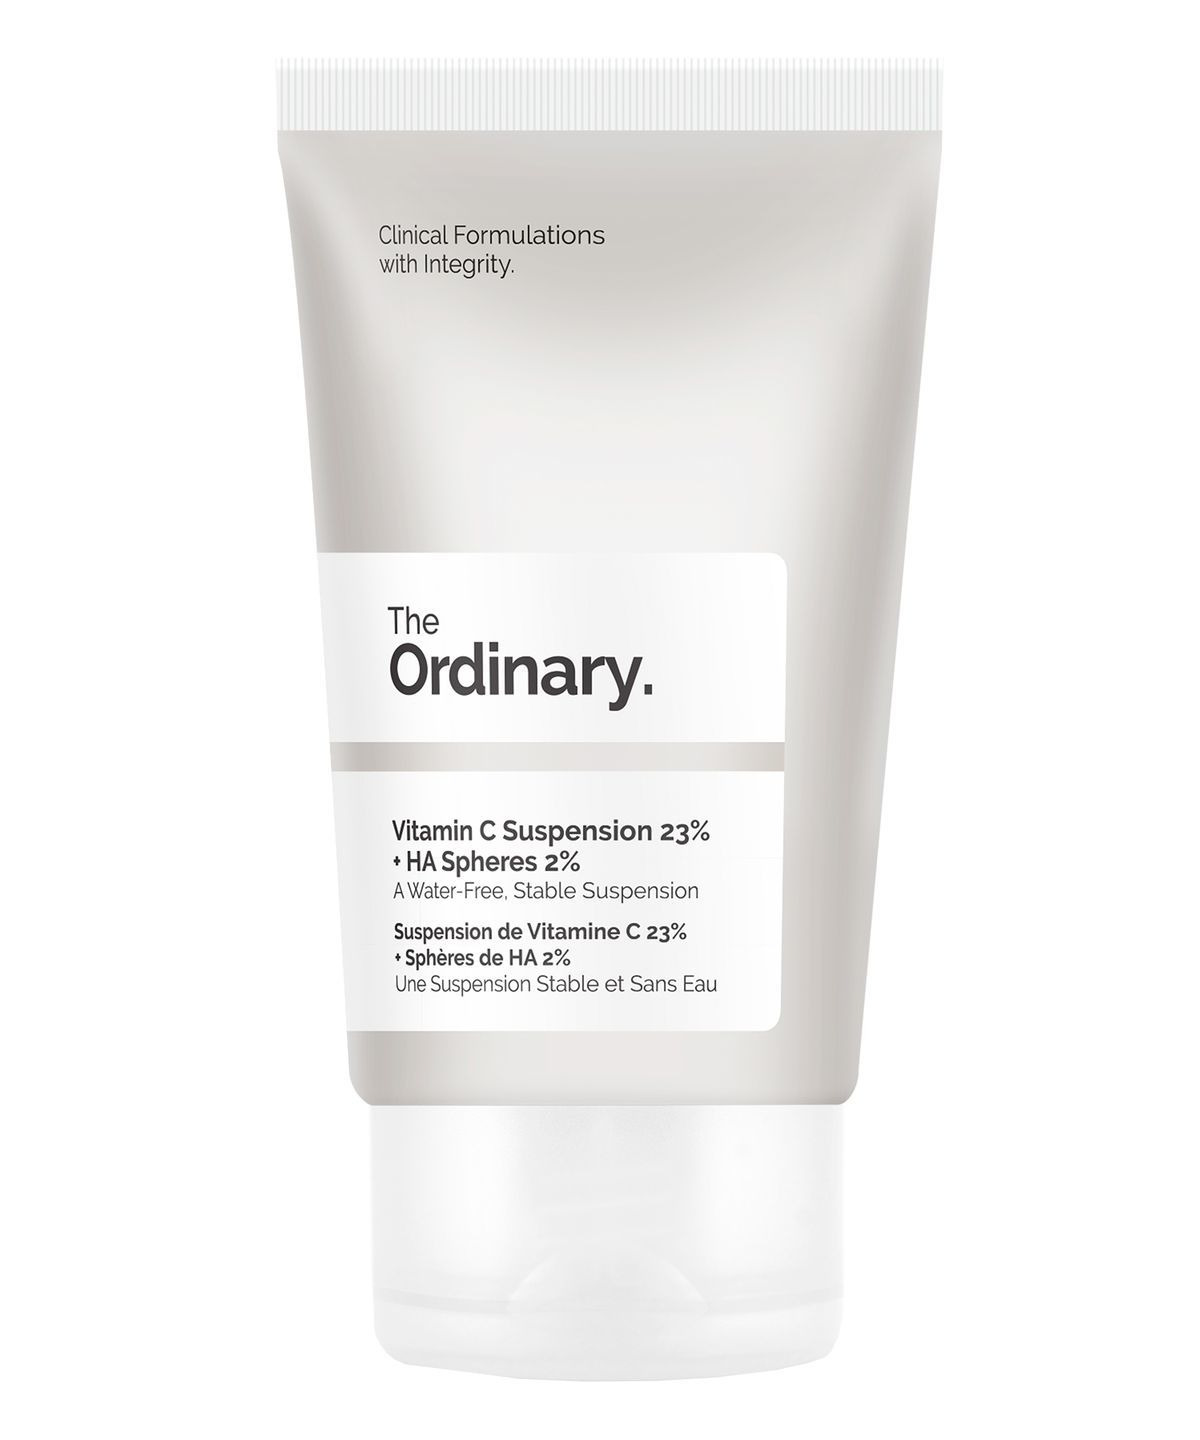 The Ordinary Vitamin C Suspension 23% + HA Spheres 2% сыворотка для лица 30мл